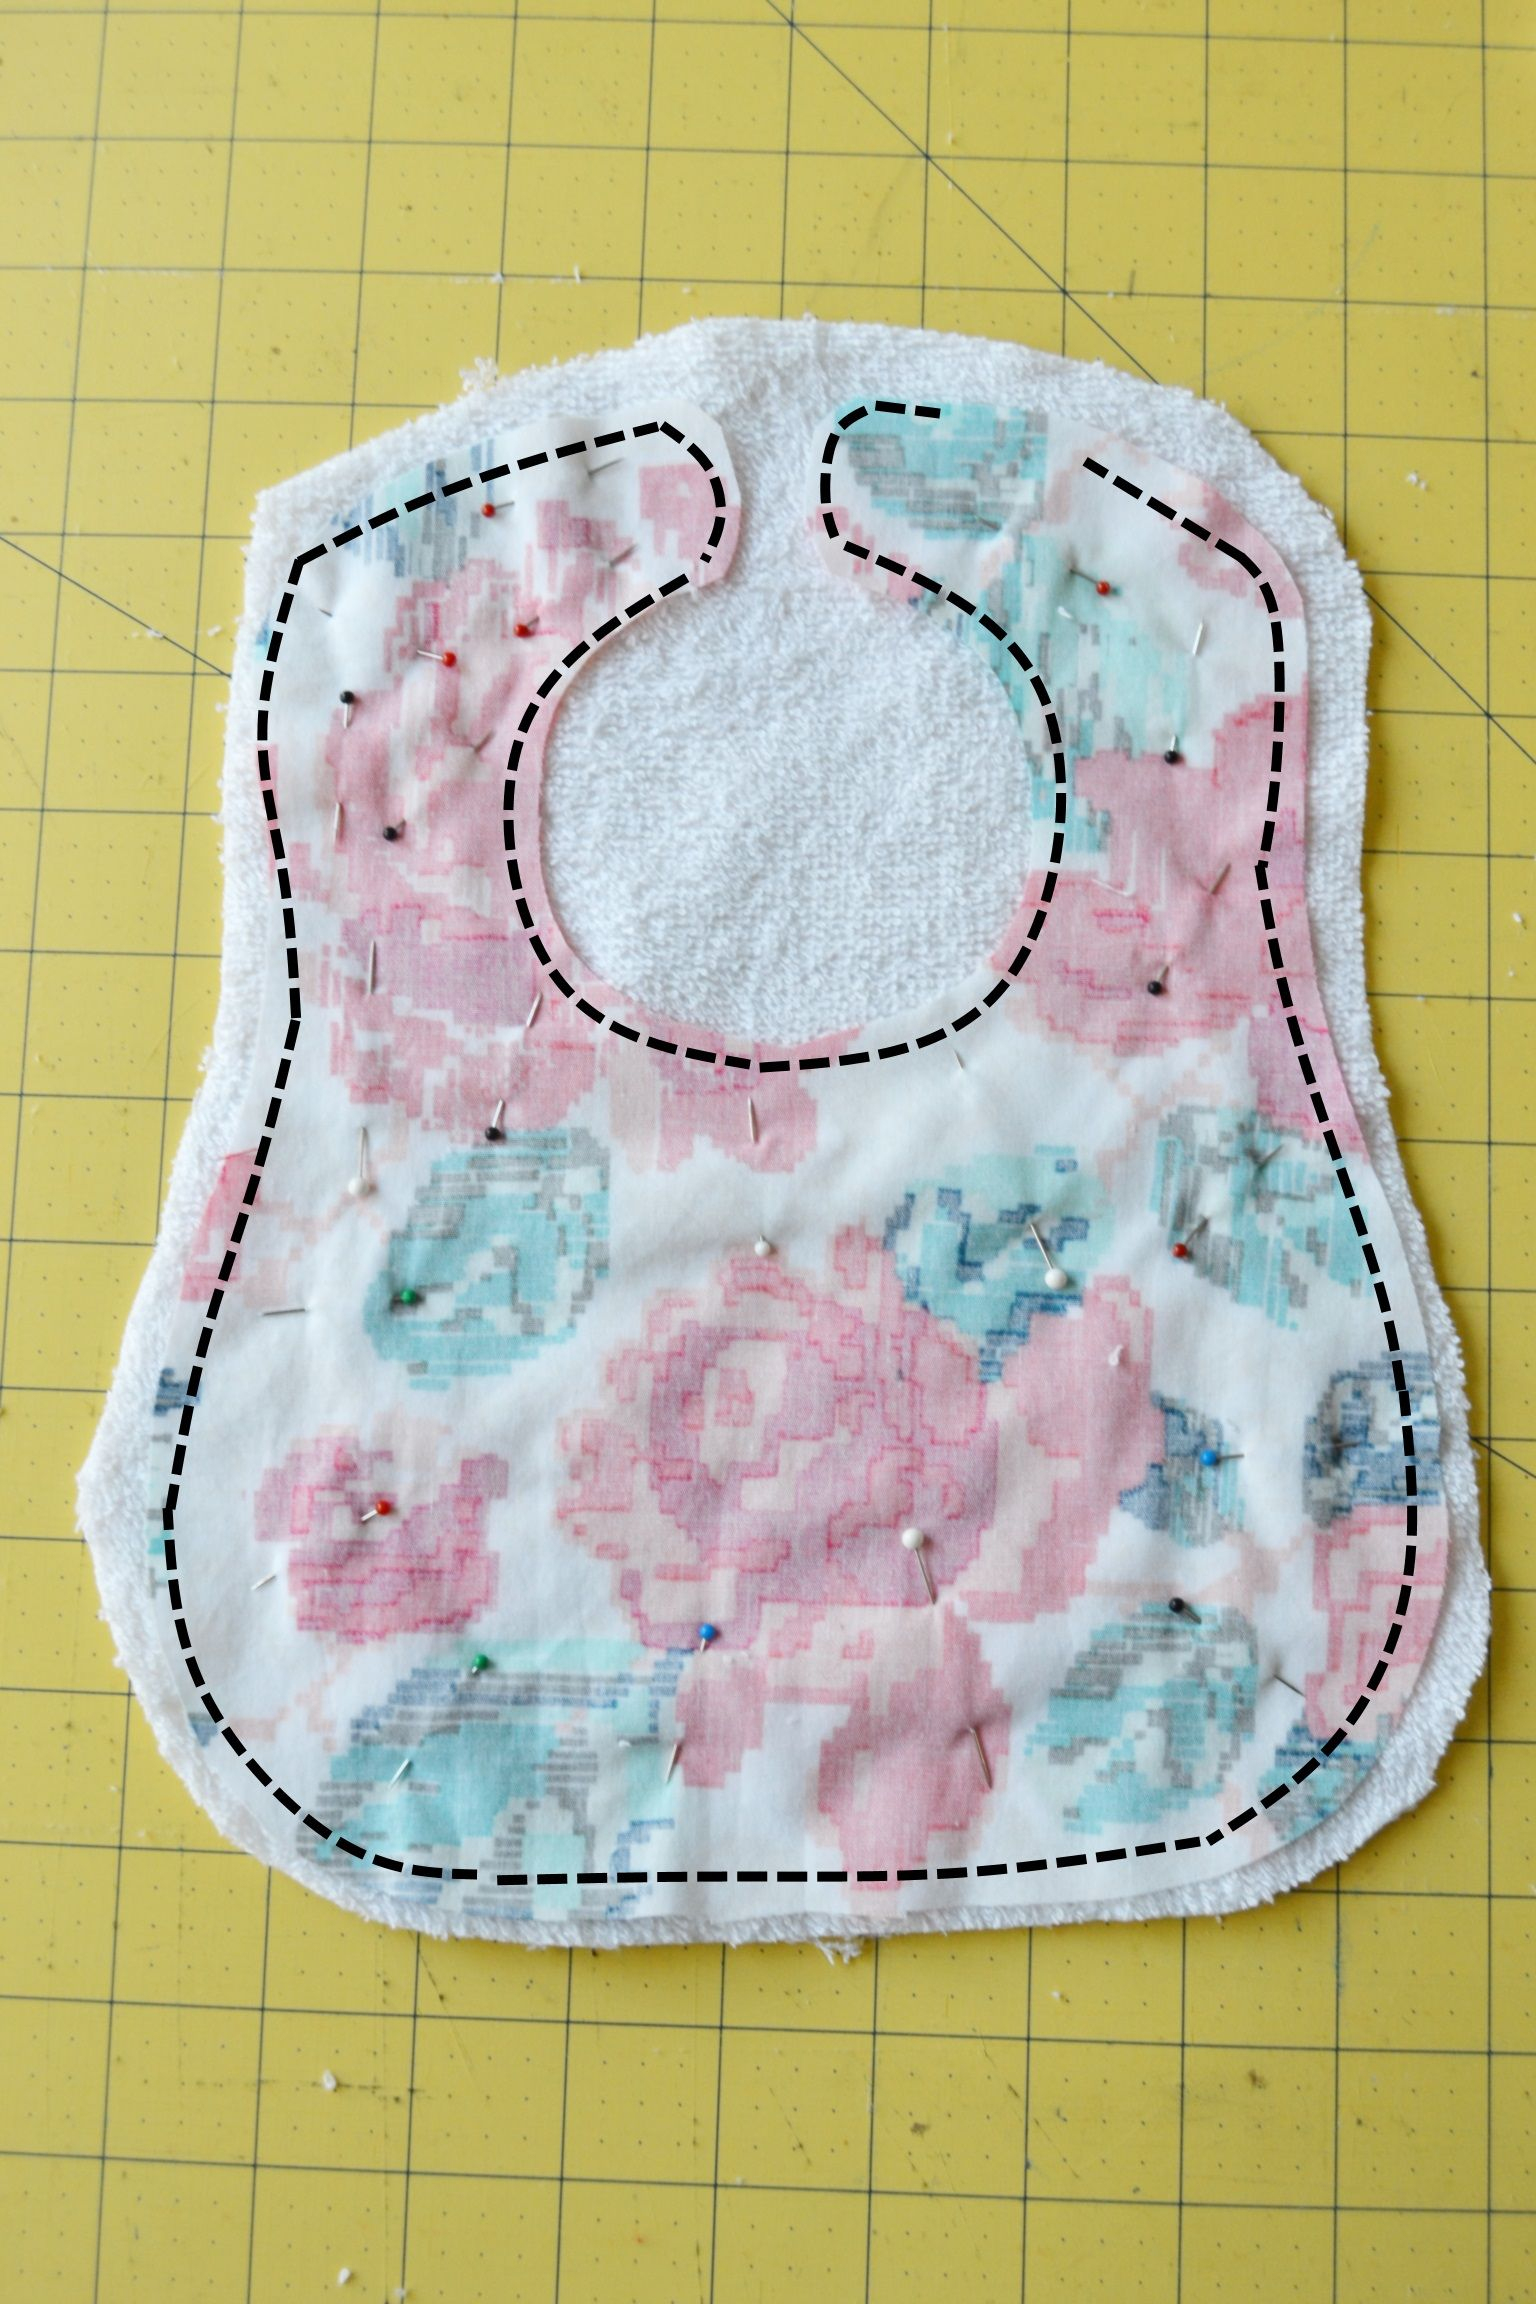 Free Printable Bib Pattern And Tutorial. Print Out This Bib Pattern - Free Printable Bib Pattern